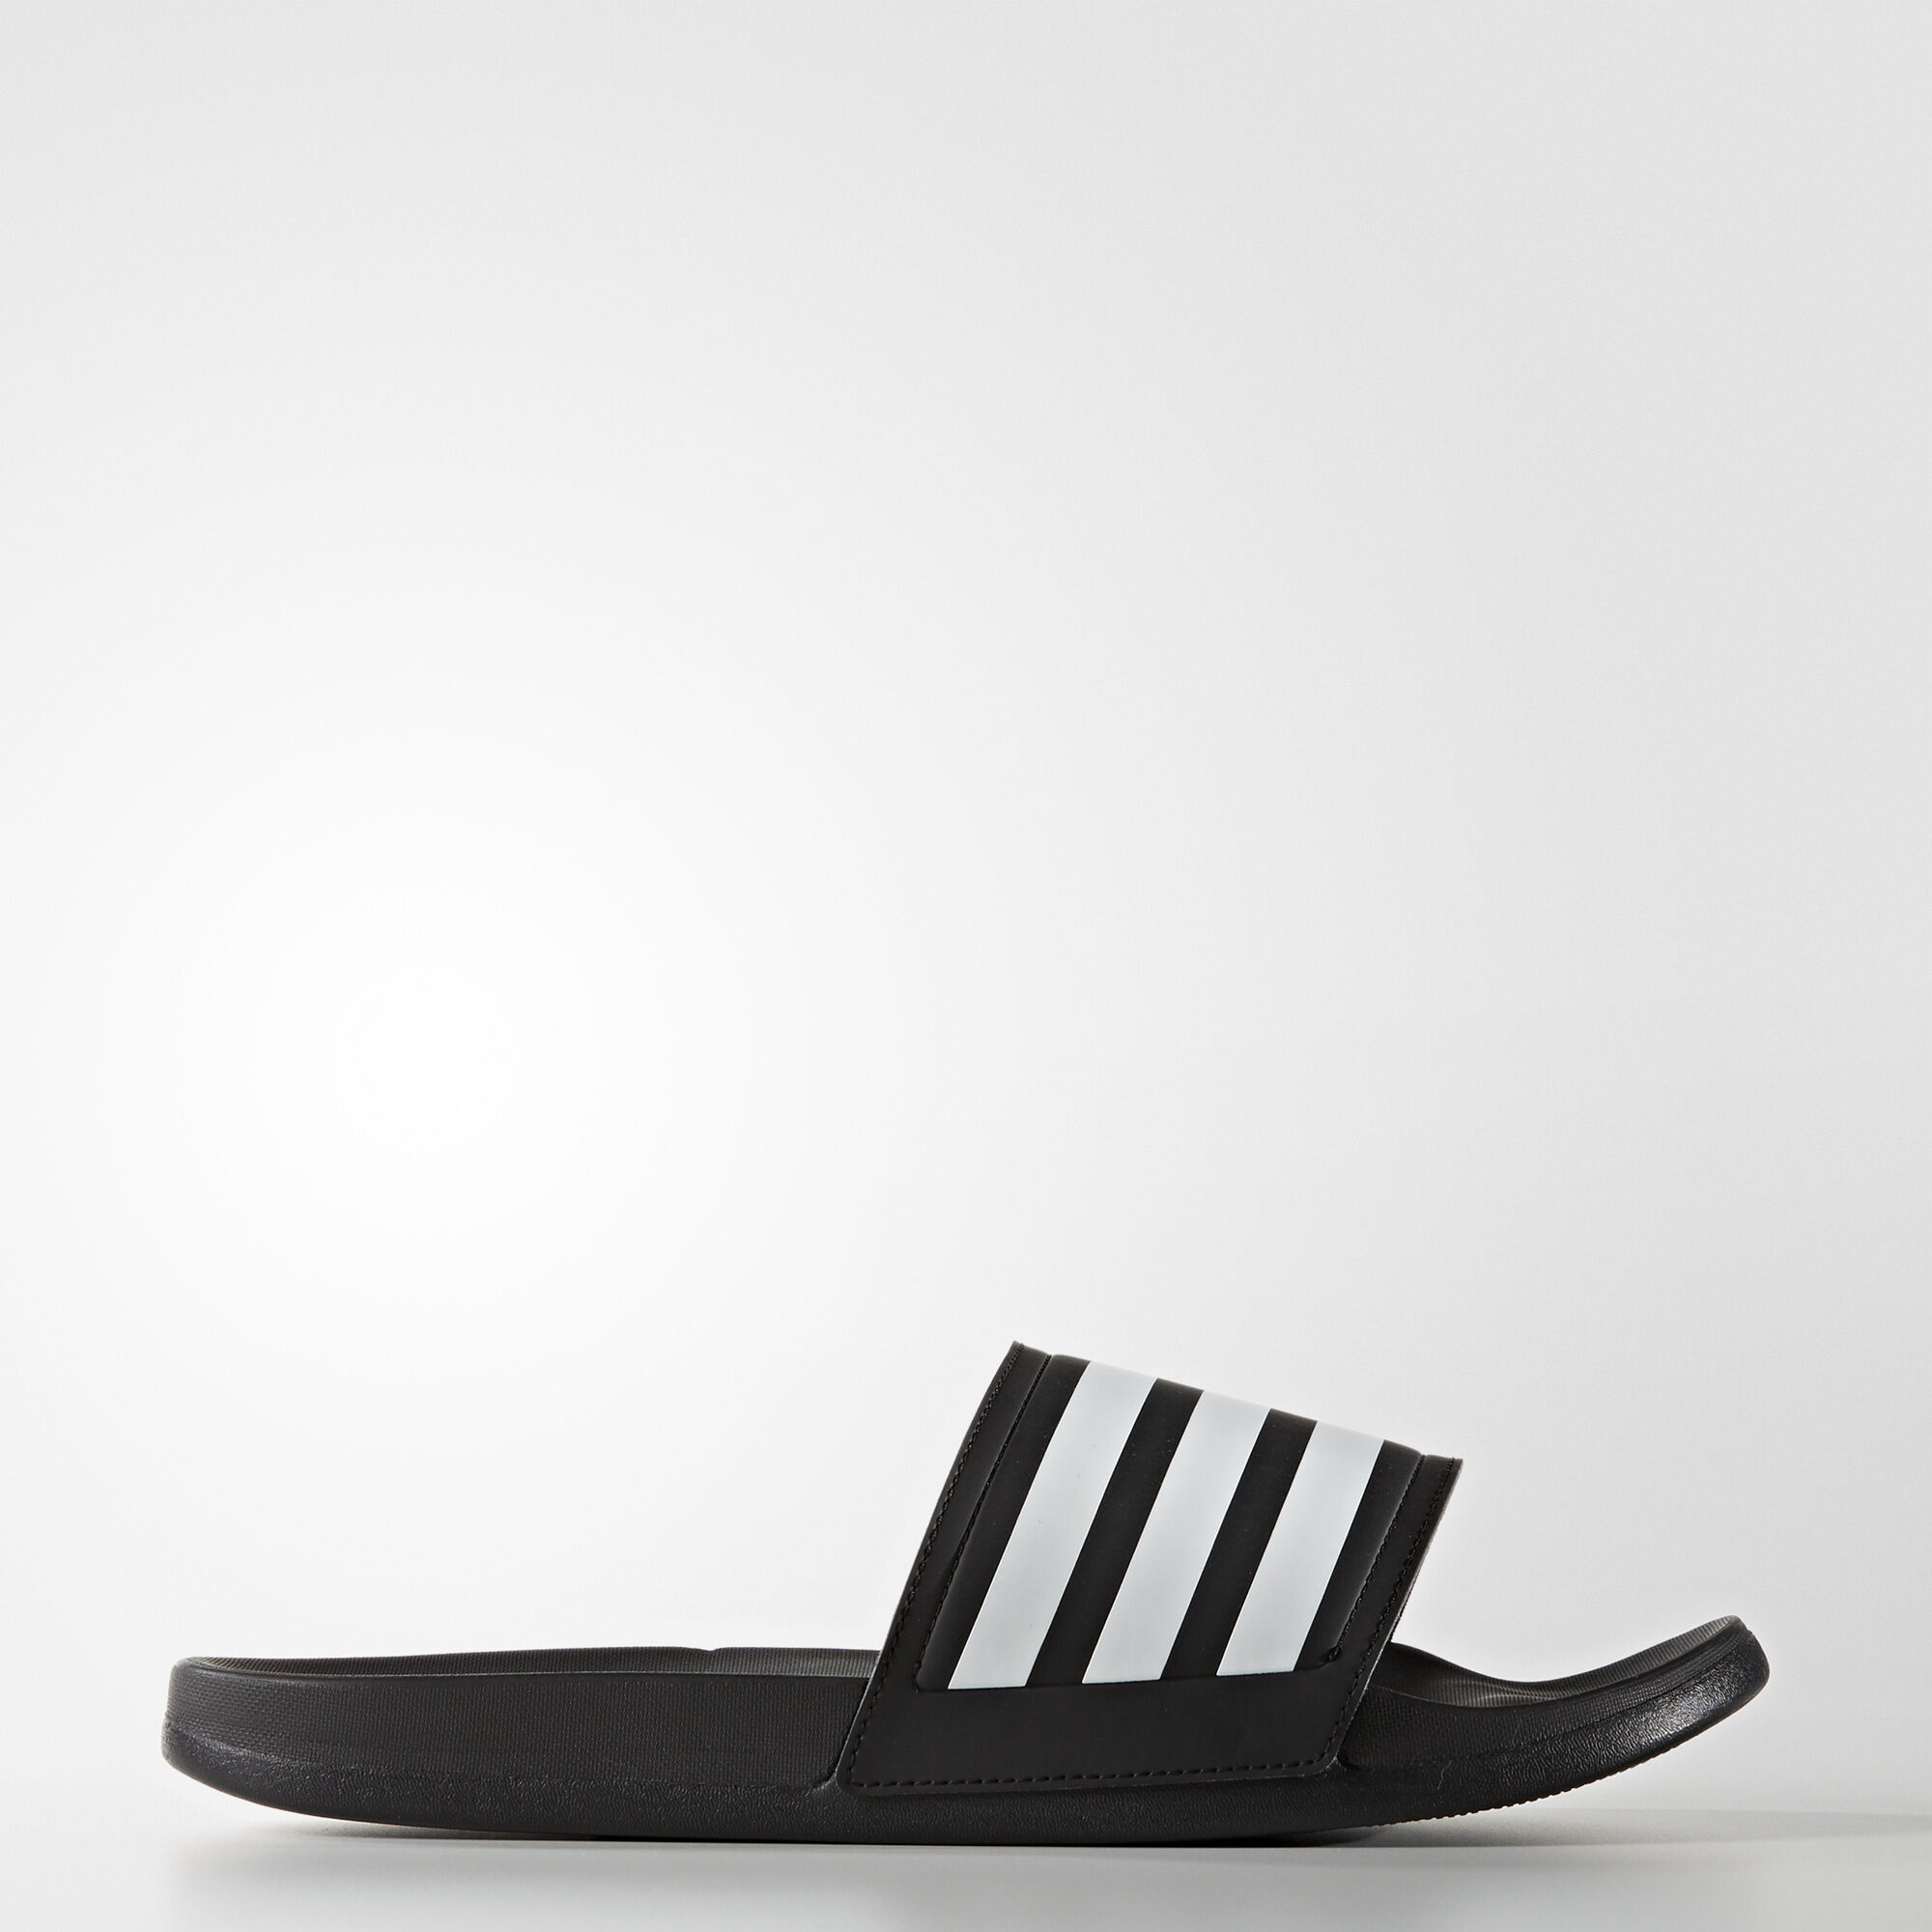 adidas adilette mens brown